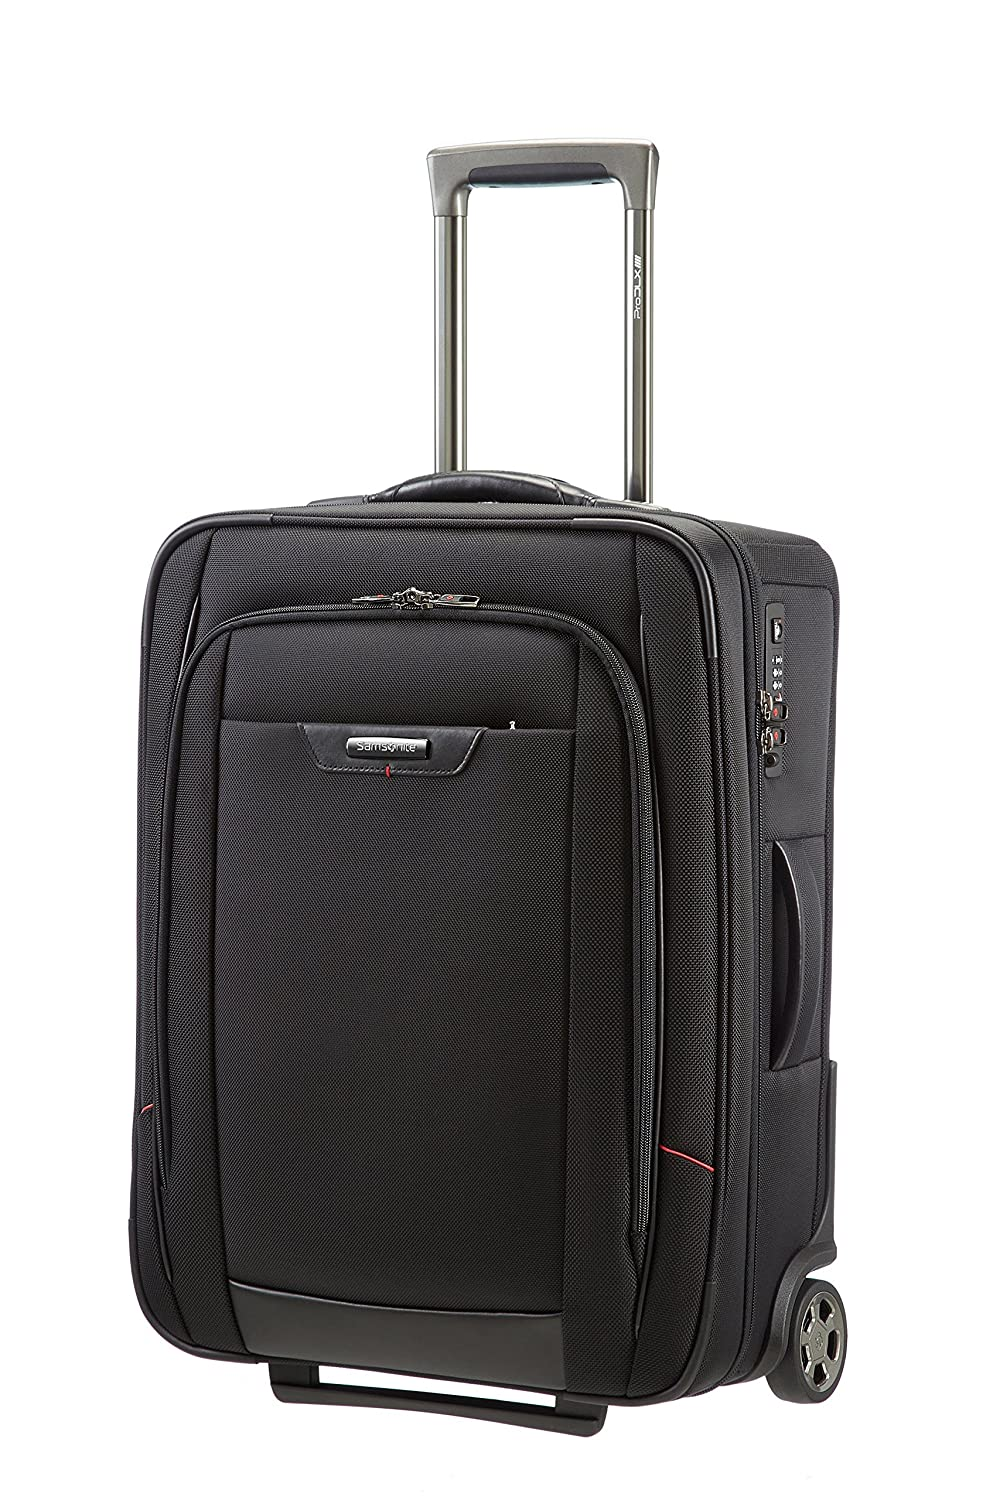 Samsonite Pro Dlx Upright  Equipaje de cabina cm L Color Negro